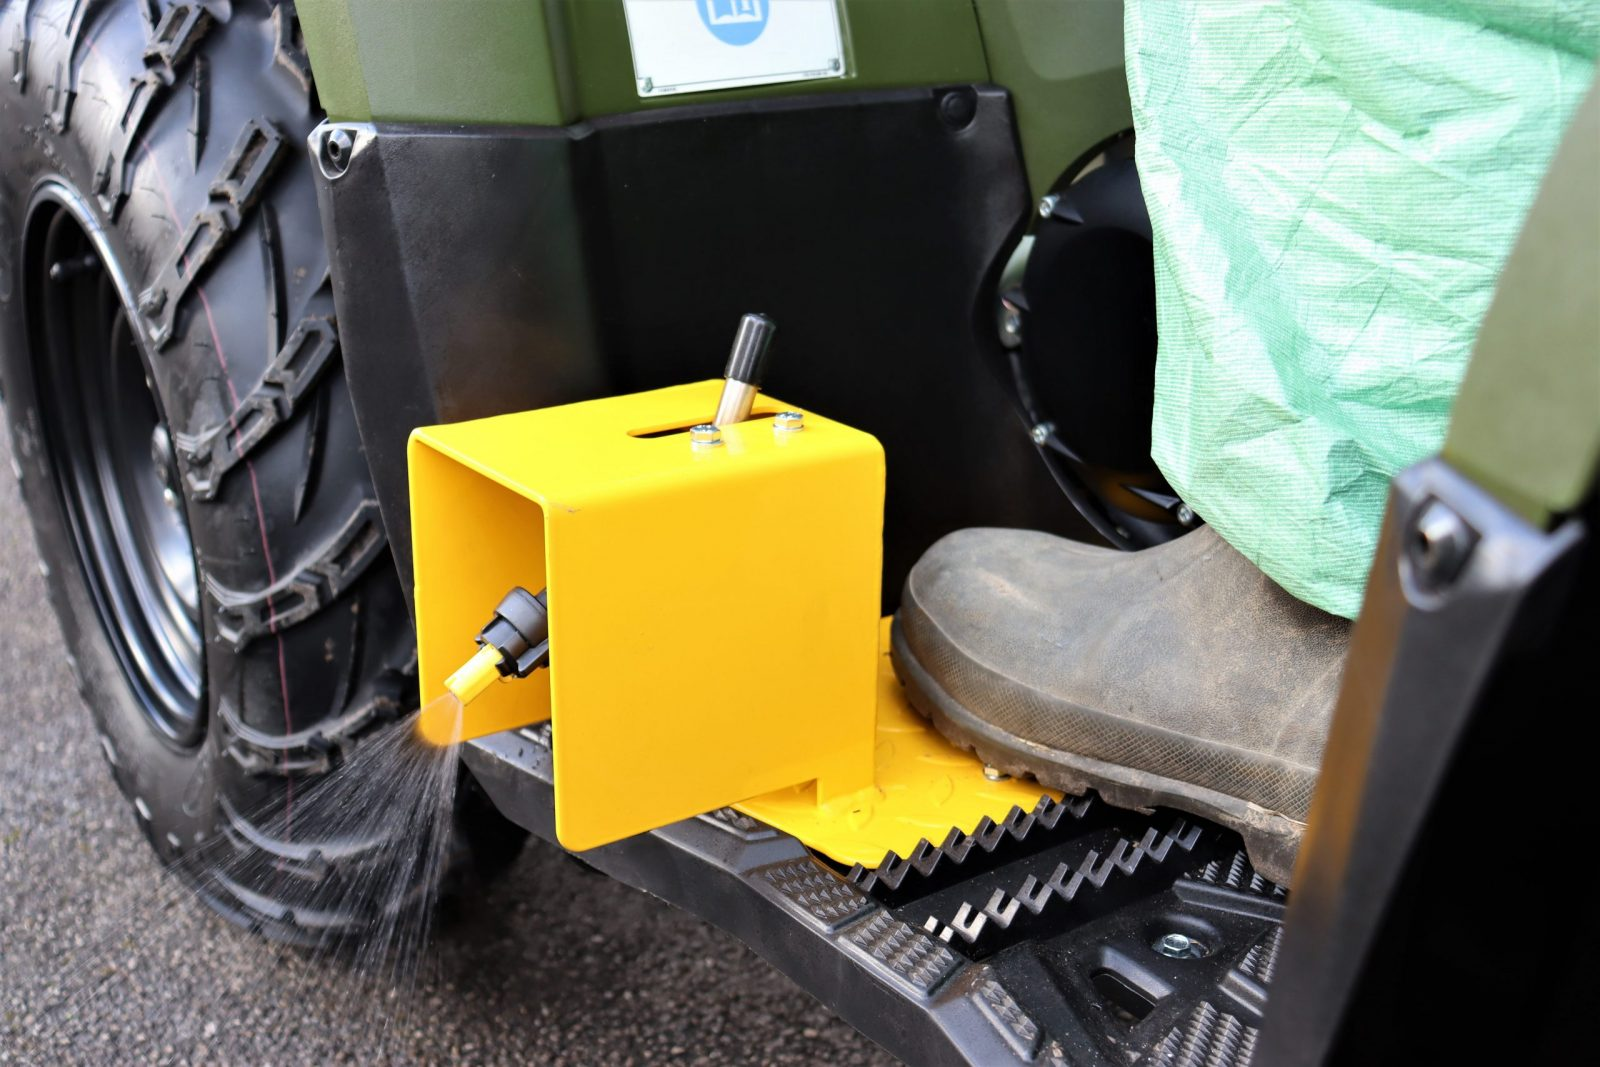 Two foot rest nozzles with off centre very low drift nozzles, angle of spray can be adjusted by driver on seat – mounted within the width of the quad bike.